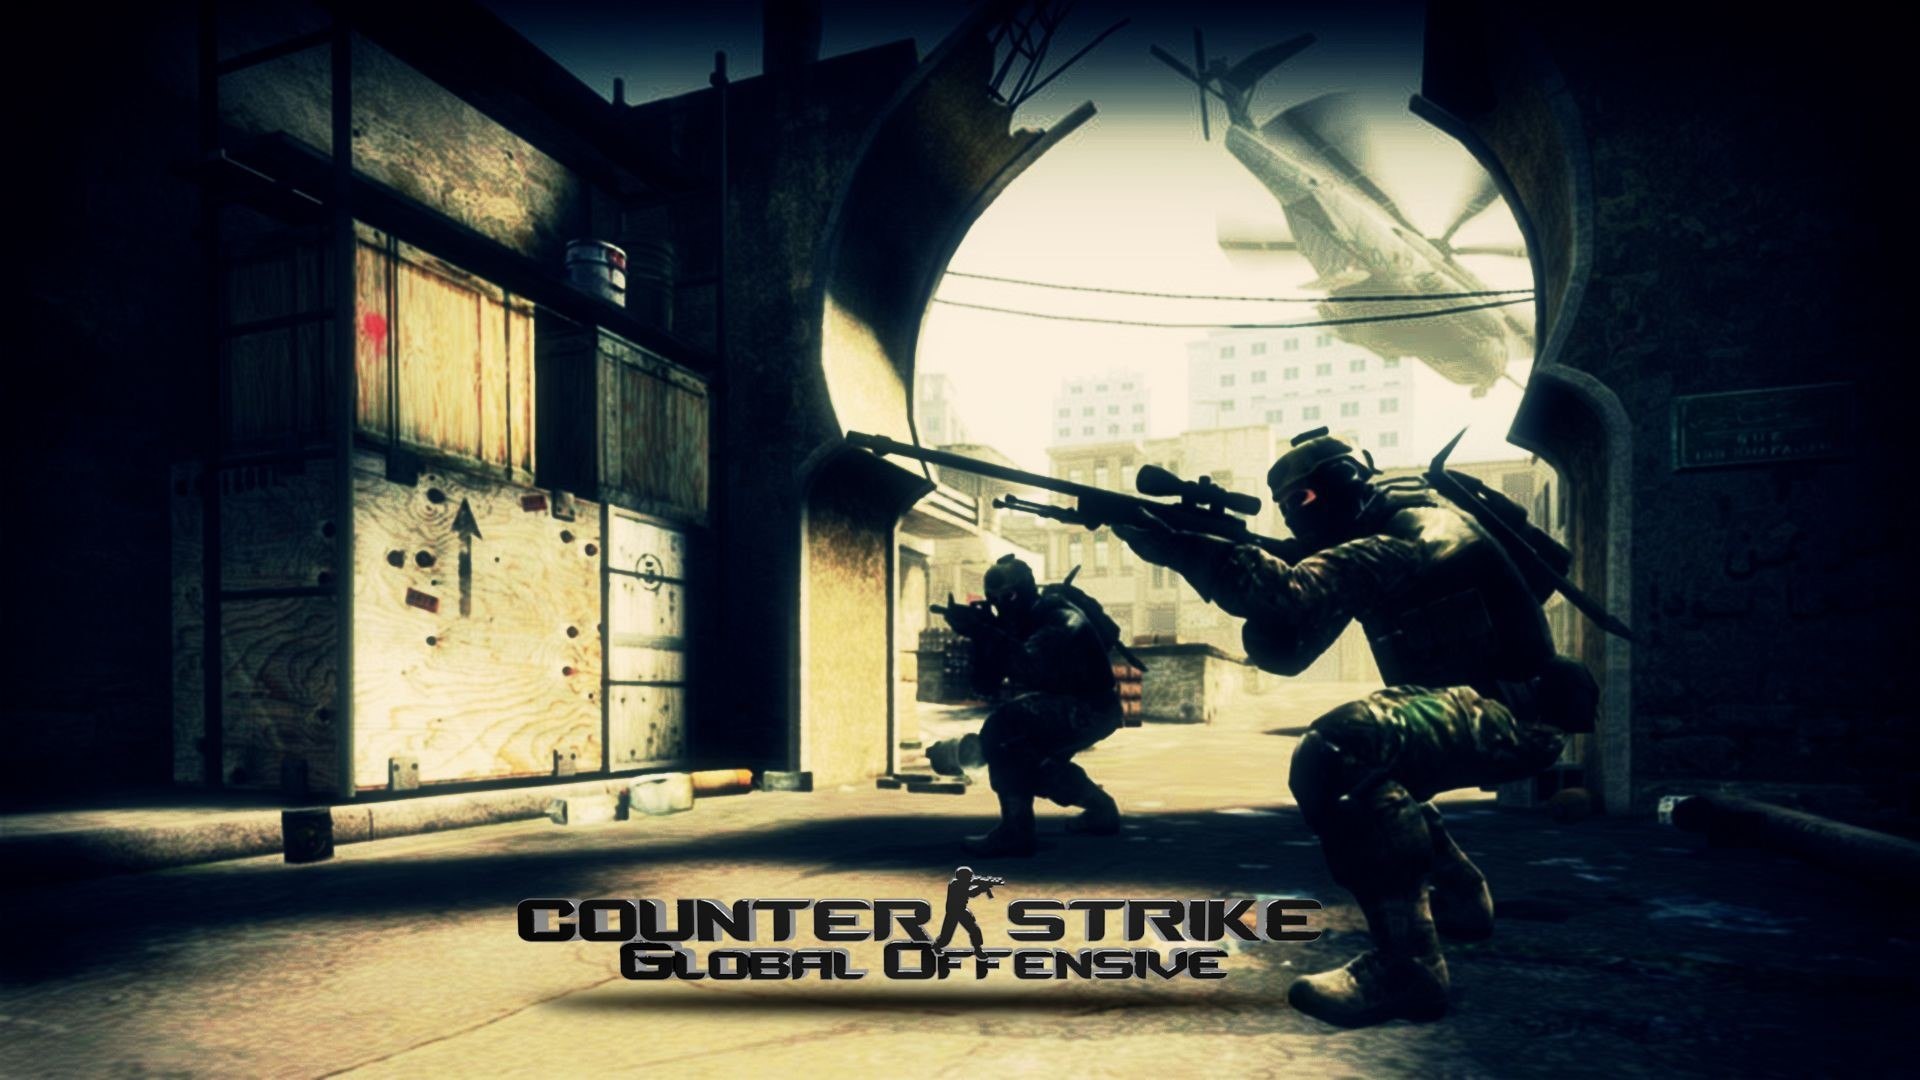 Counter Strike Global Offensive Desktop Wallpapers